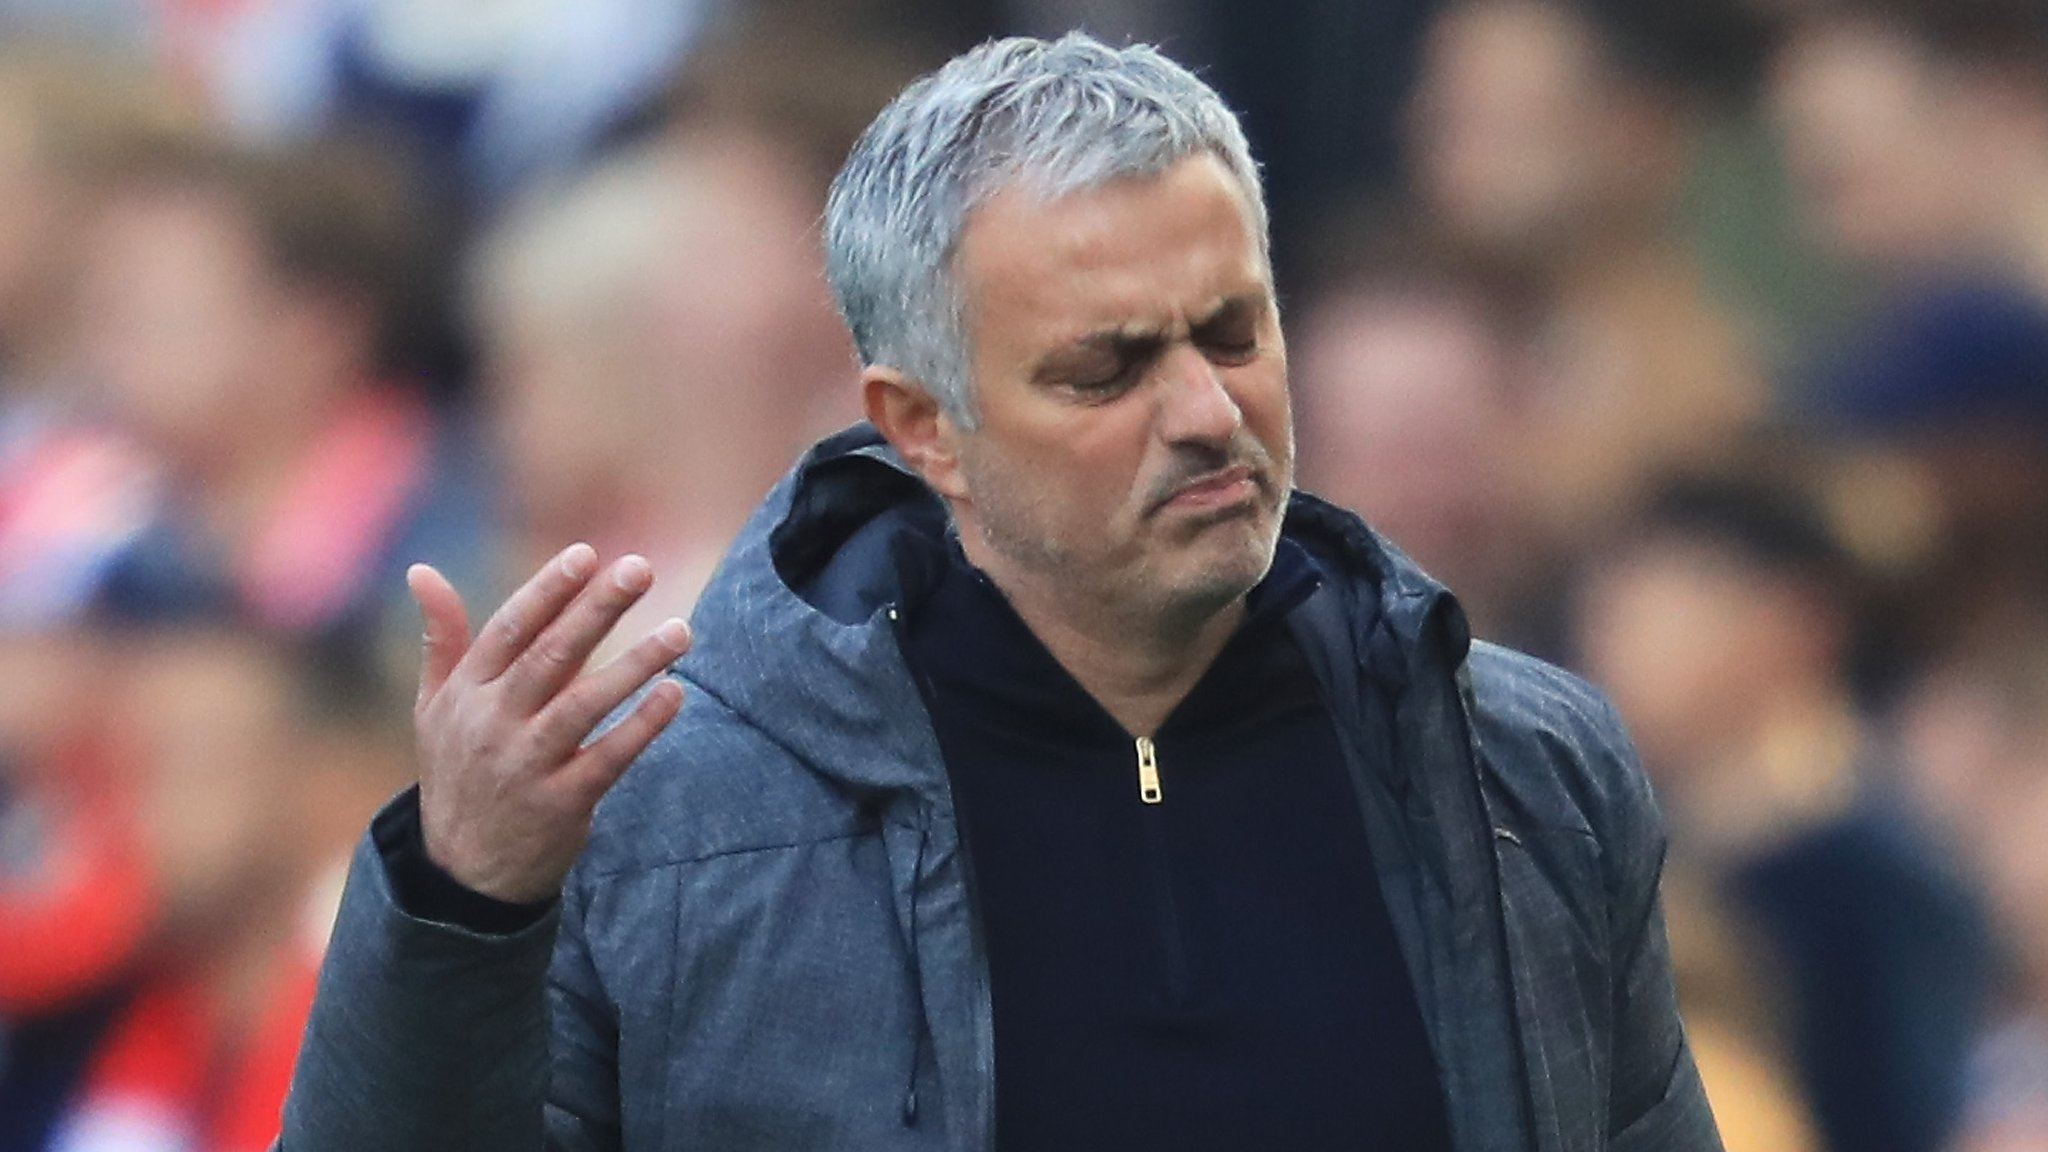 Mourinho's low as Chelsea set new mark - a season in stats